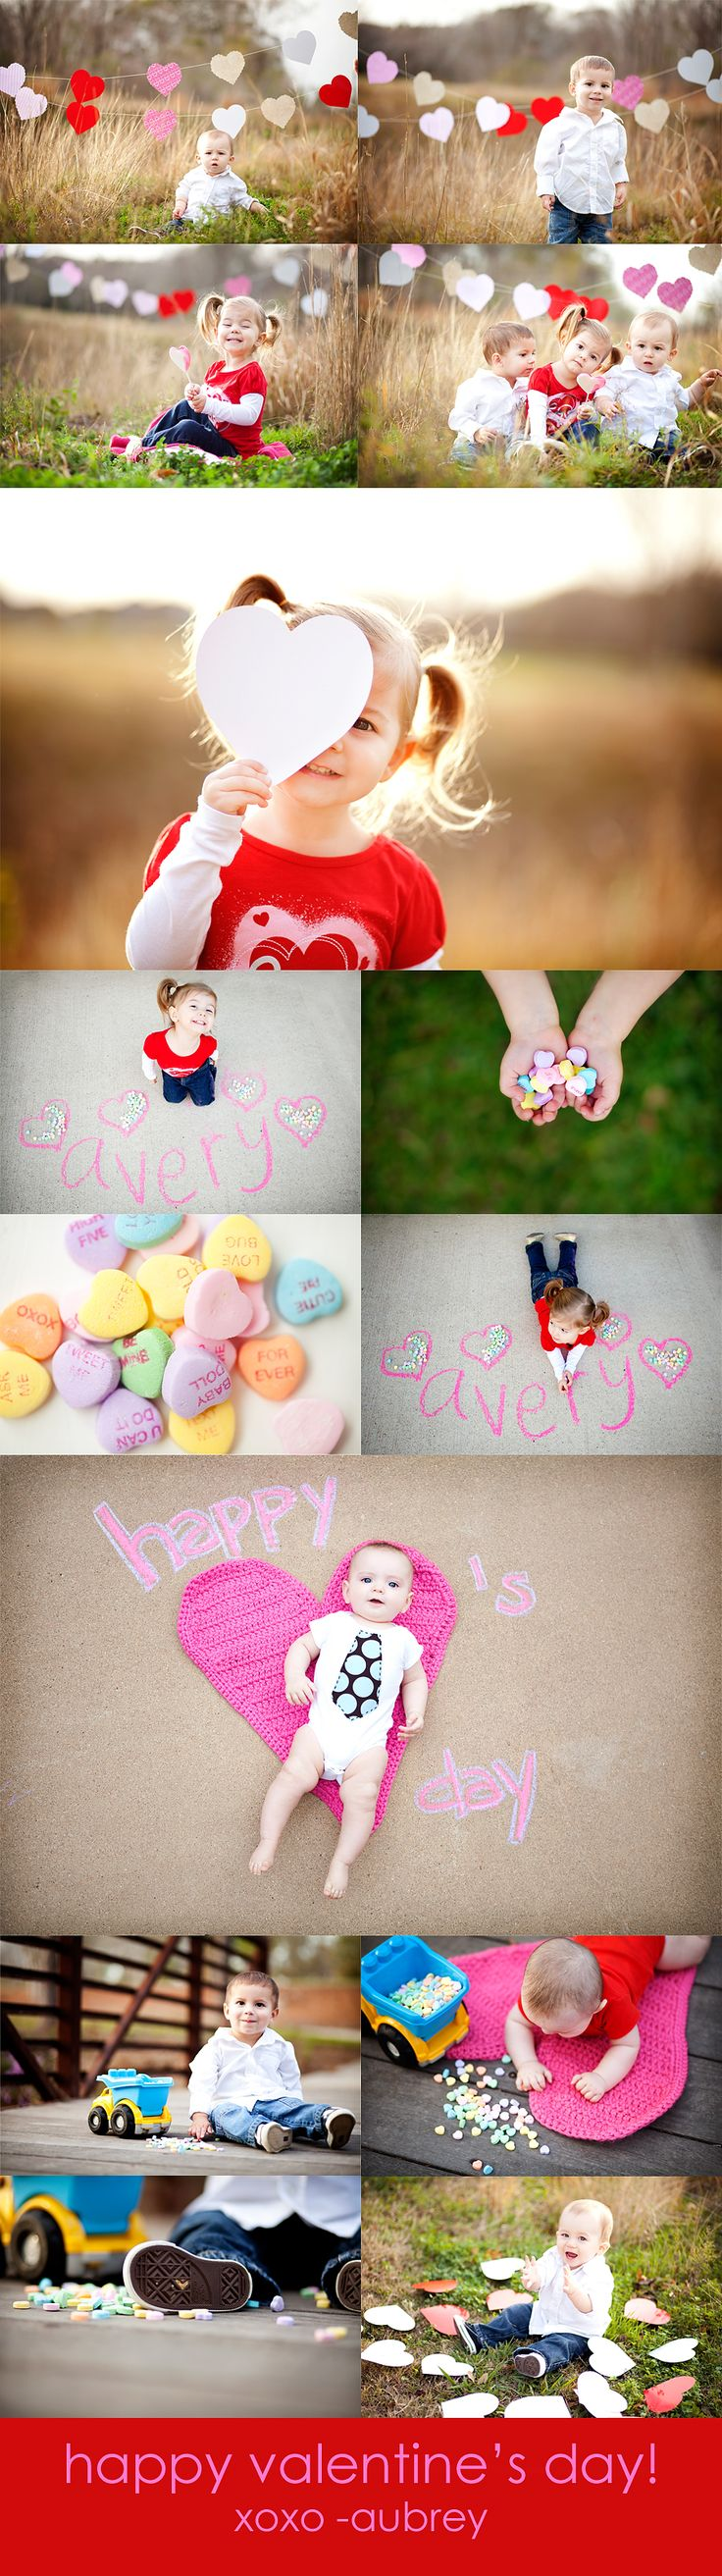 Very creative Valentine's Day images from Aubrey Torrey Photography | www.aubreytorreyphotography.com